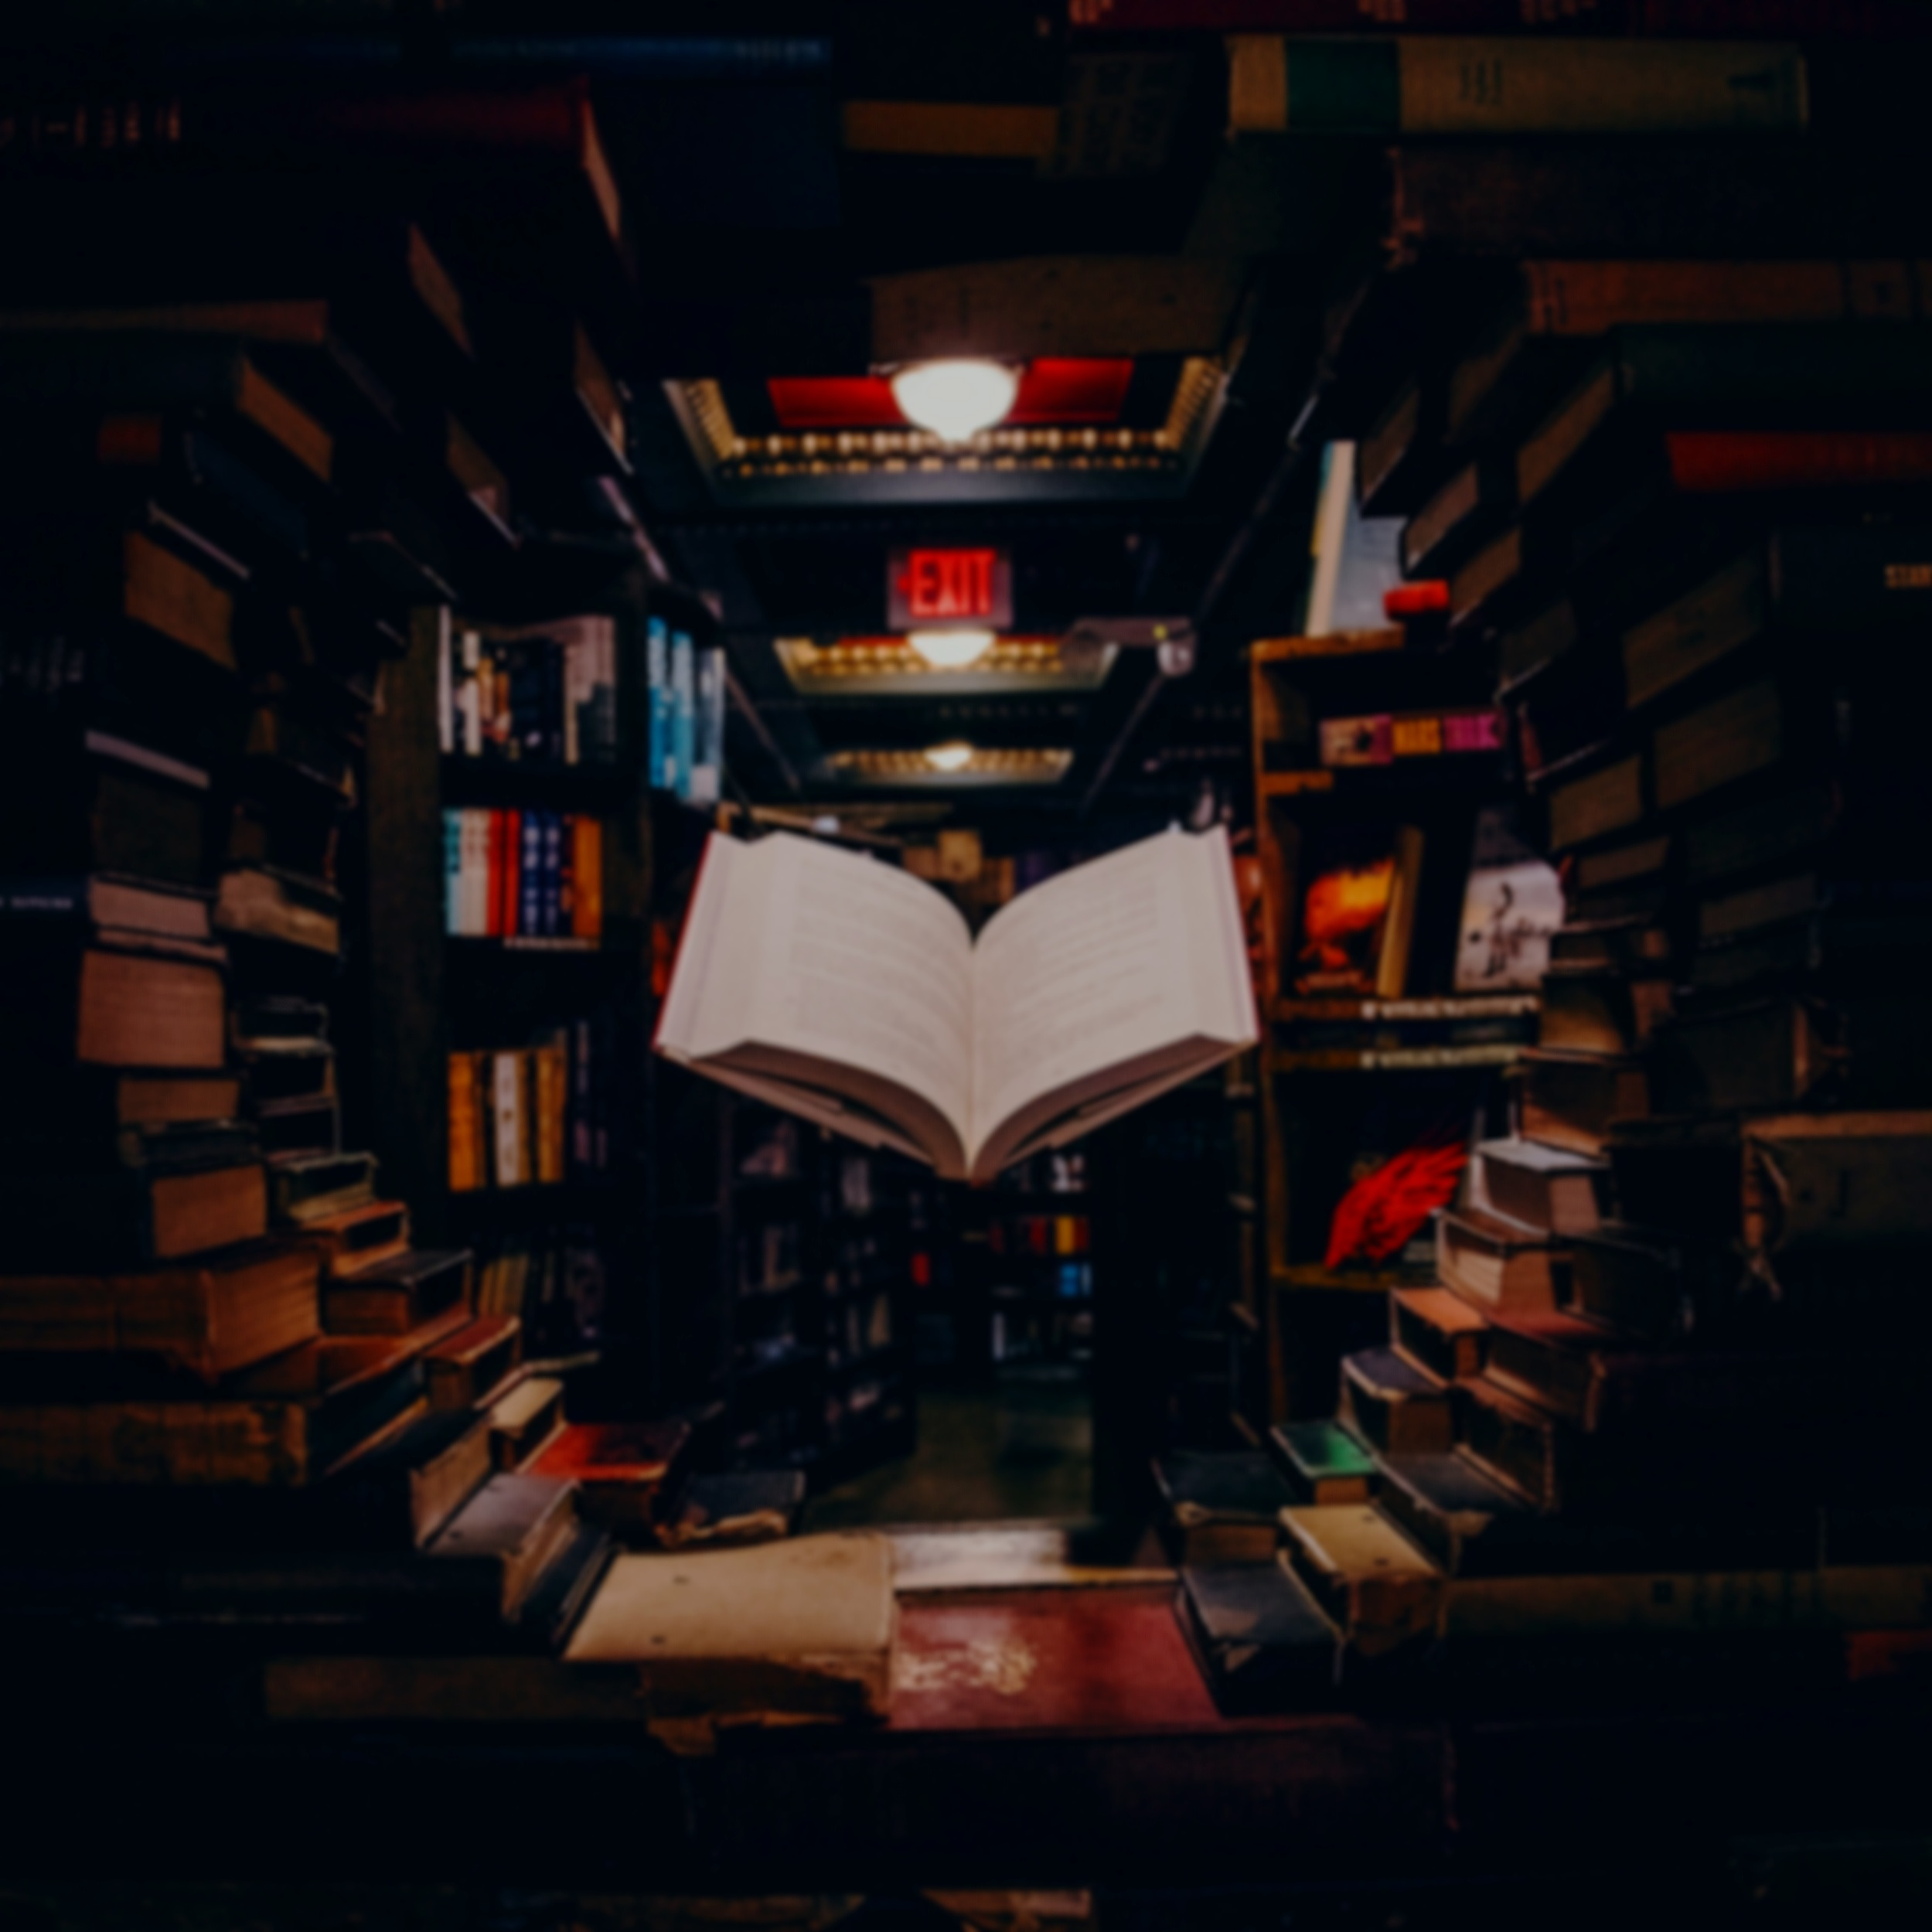 Text Technologies: The Changing Spaces of Reading and Writing - ETEC 540